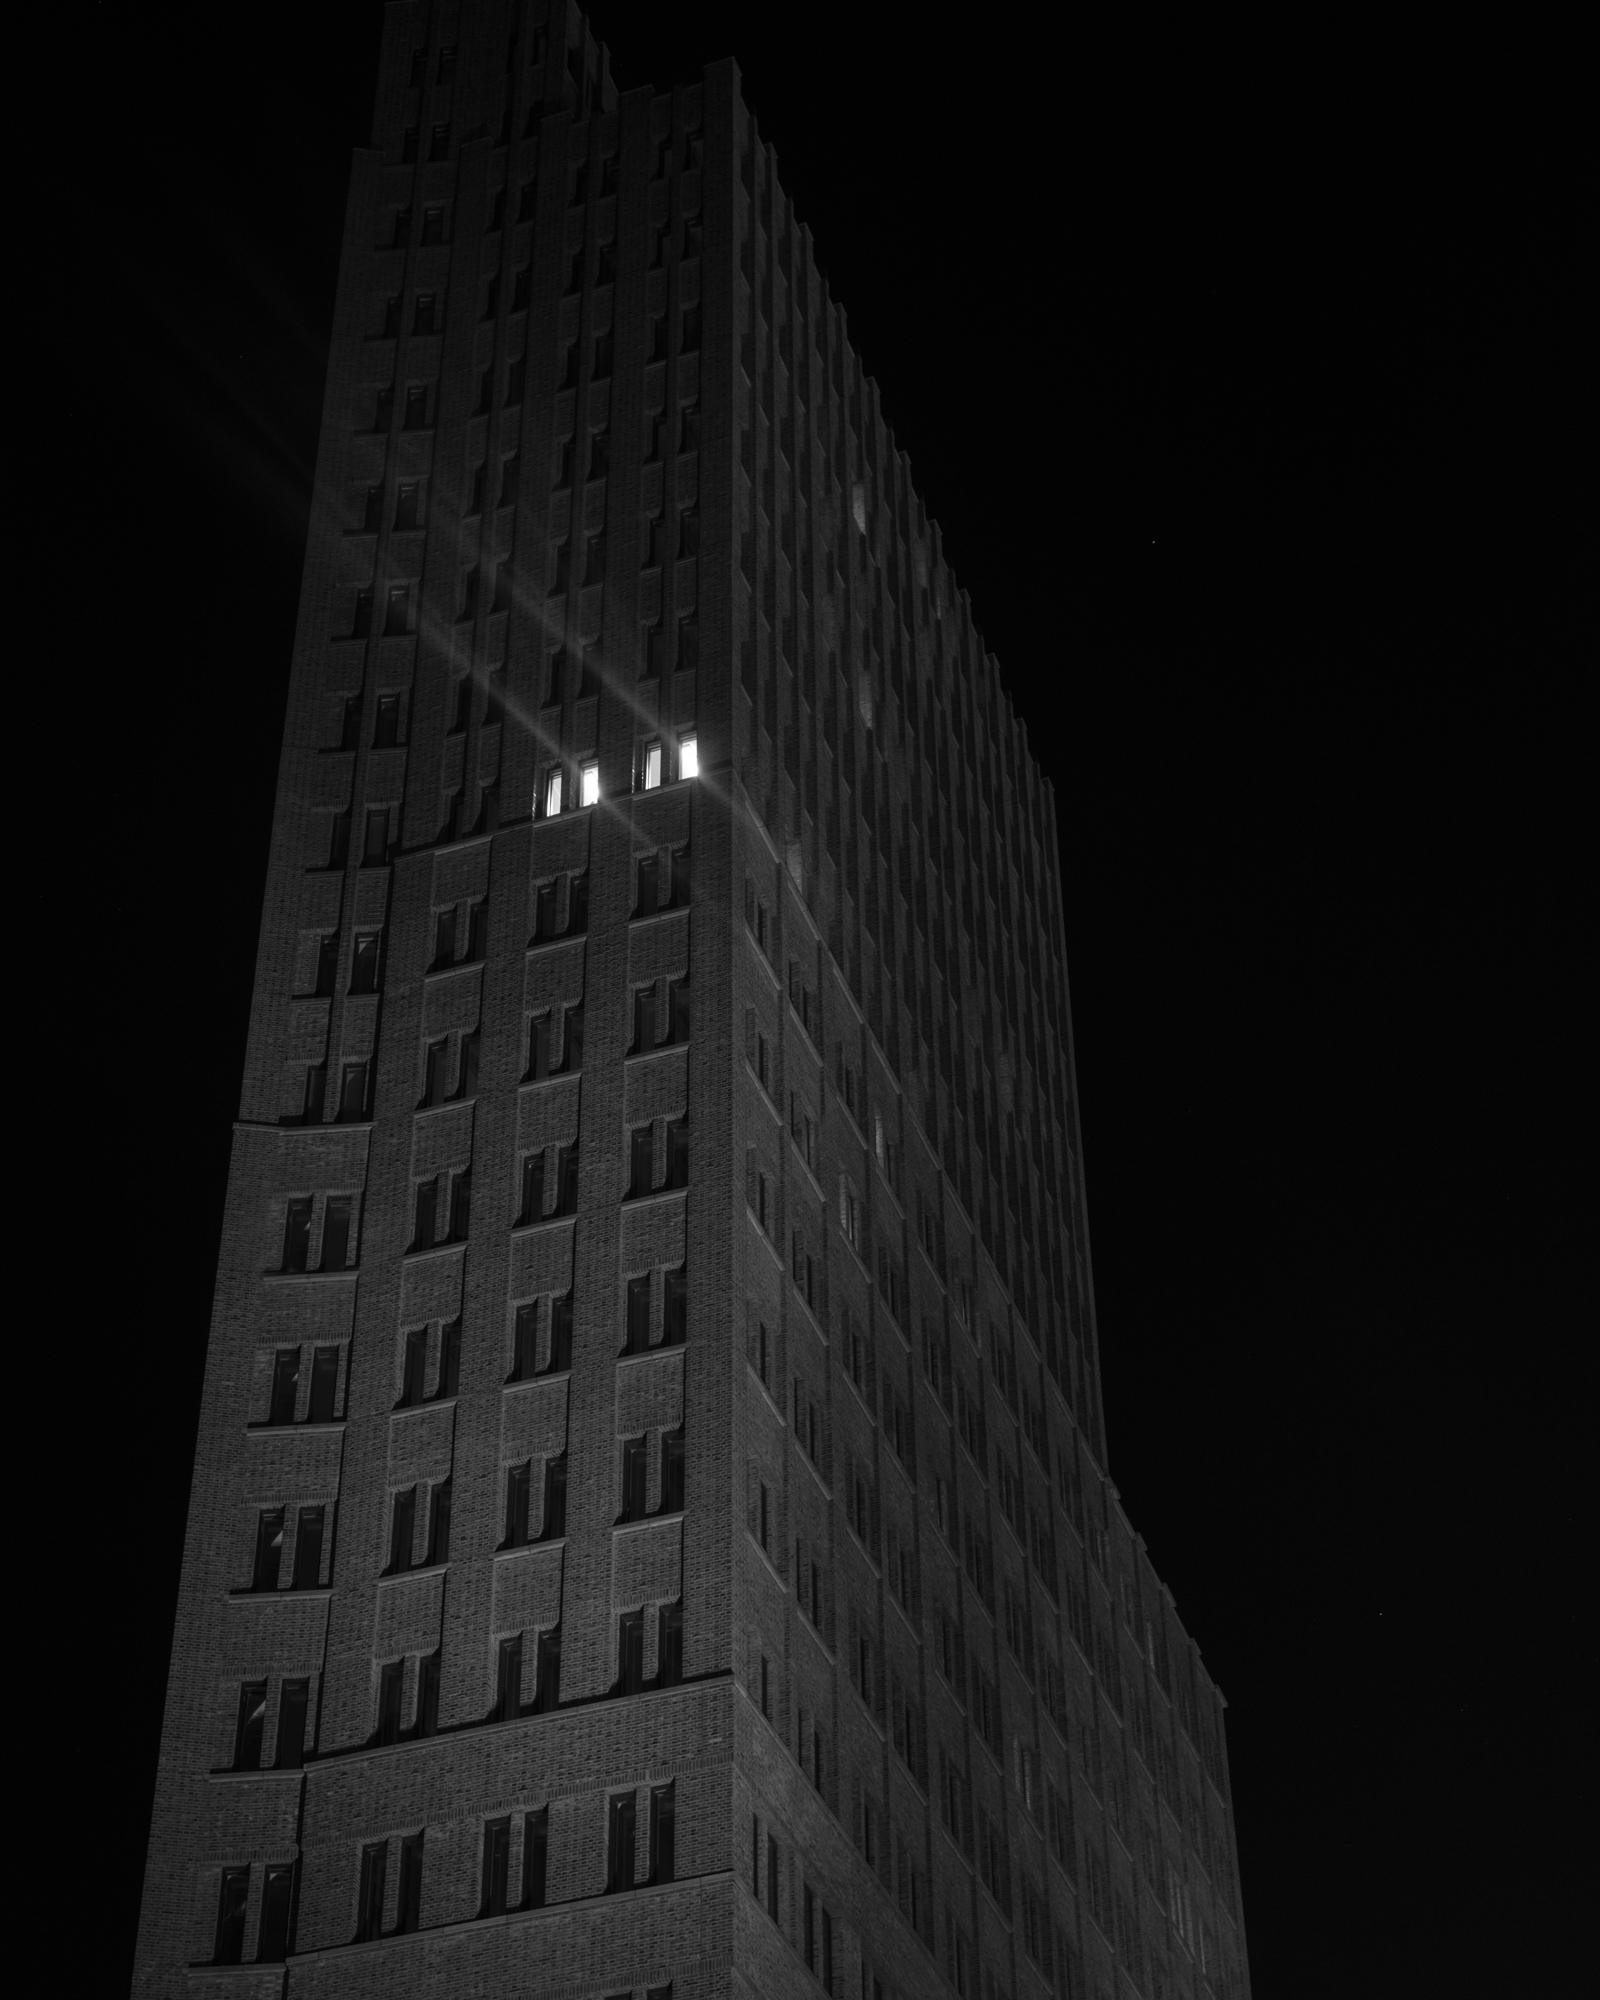 Building at Night, 2017, Archival Pigment Print, 16x20